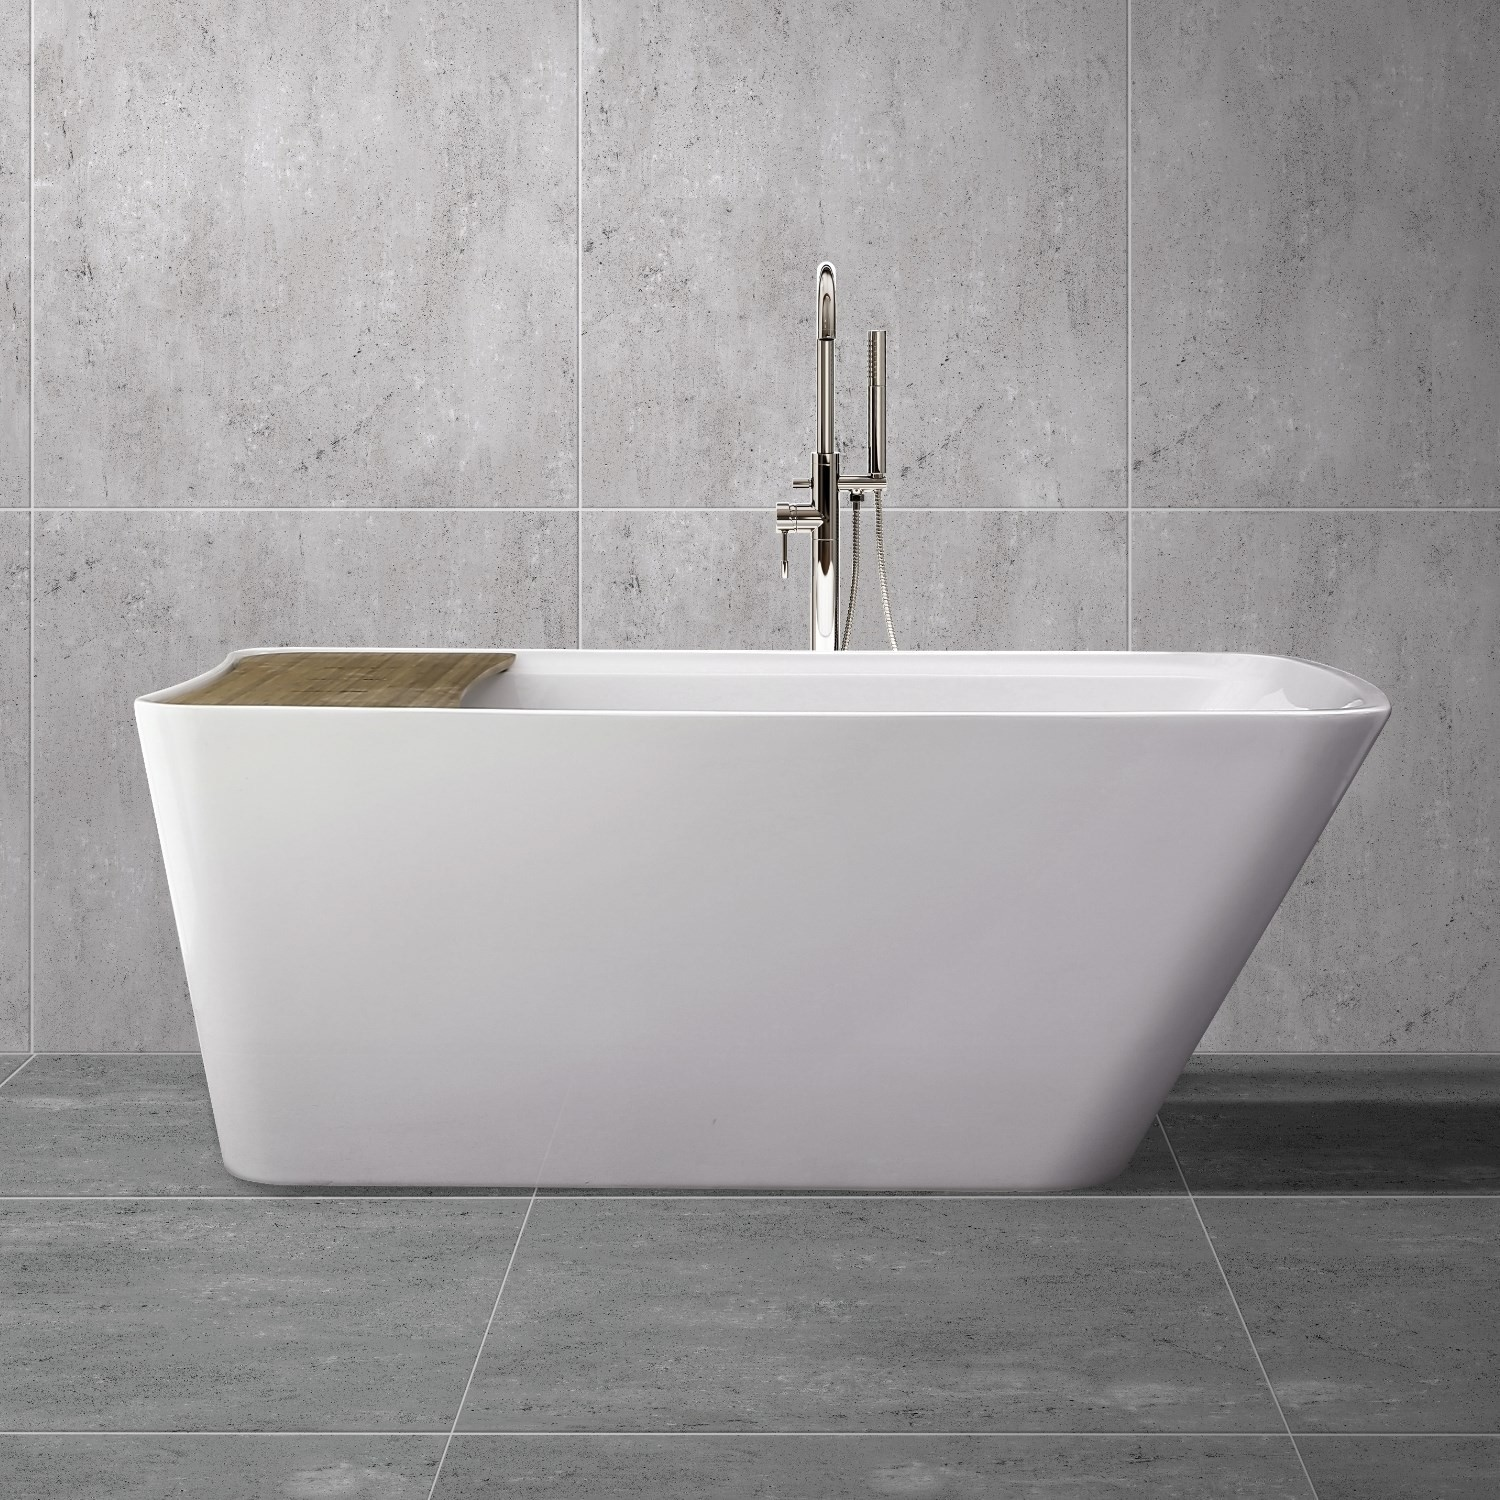 Details About Freestanding Bath With Bath Bridge 1700 X 780mm White Acrylic Single Ended Tub